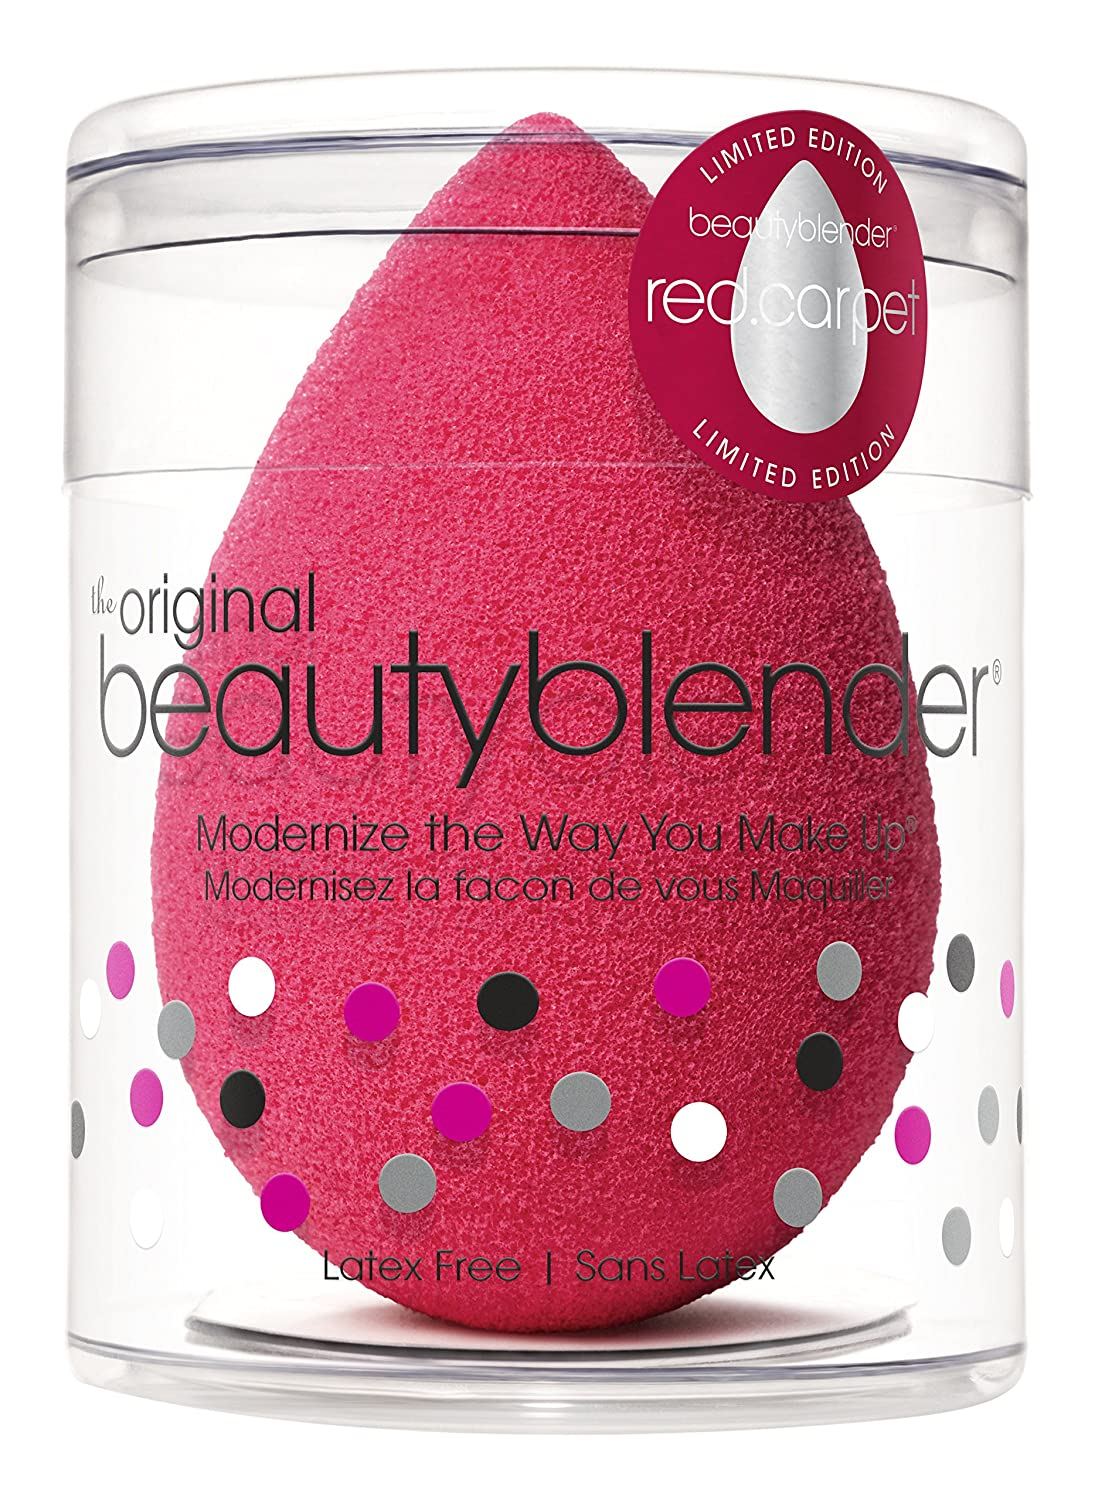 beautyblender nude: Makeup Sponge for a Flawless Natural Look, Perfect with Foundations, Powders & Creams 5455